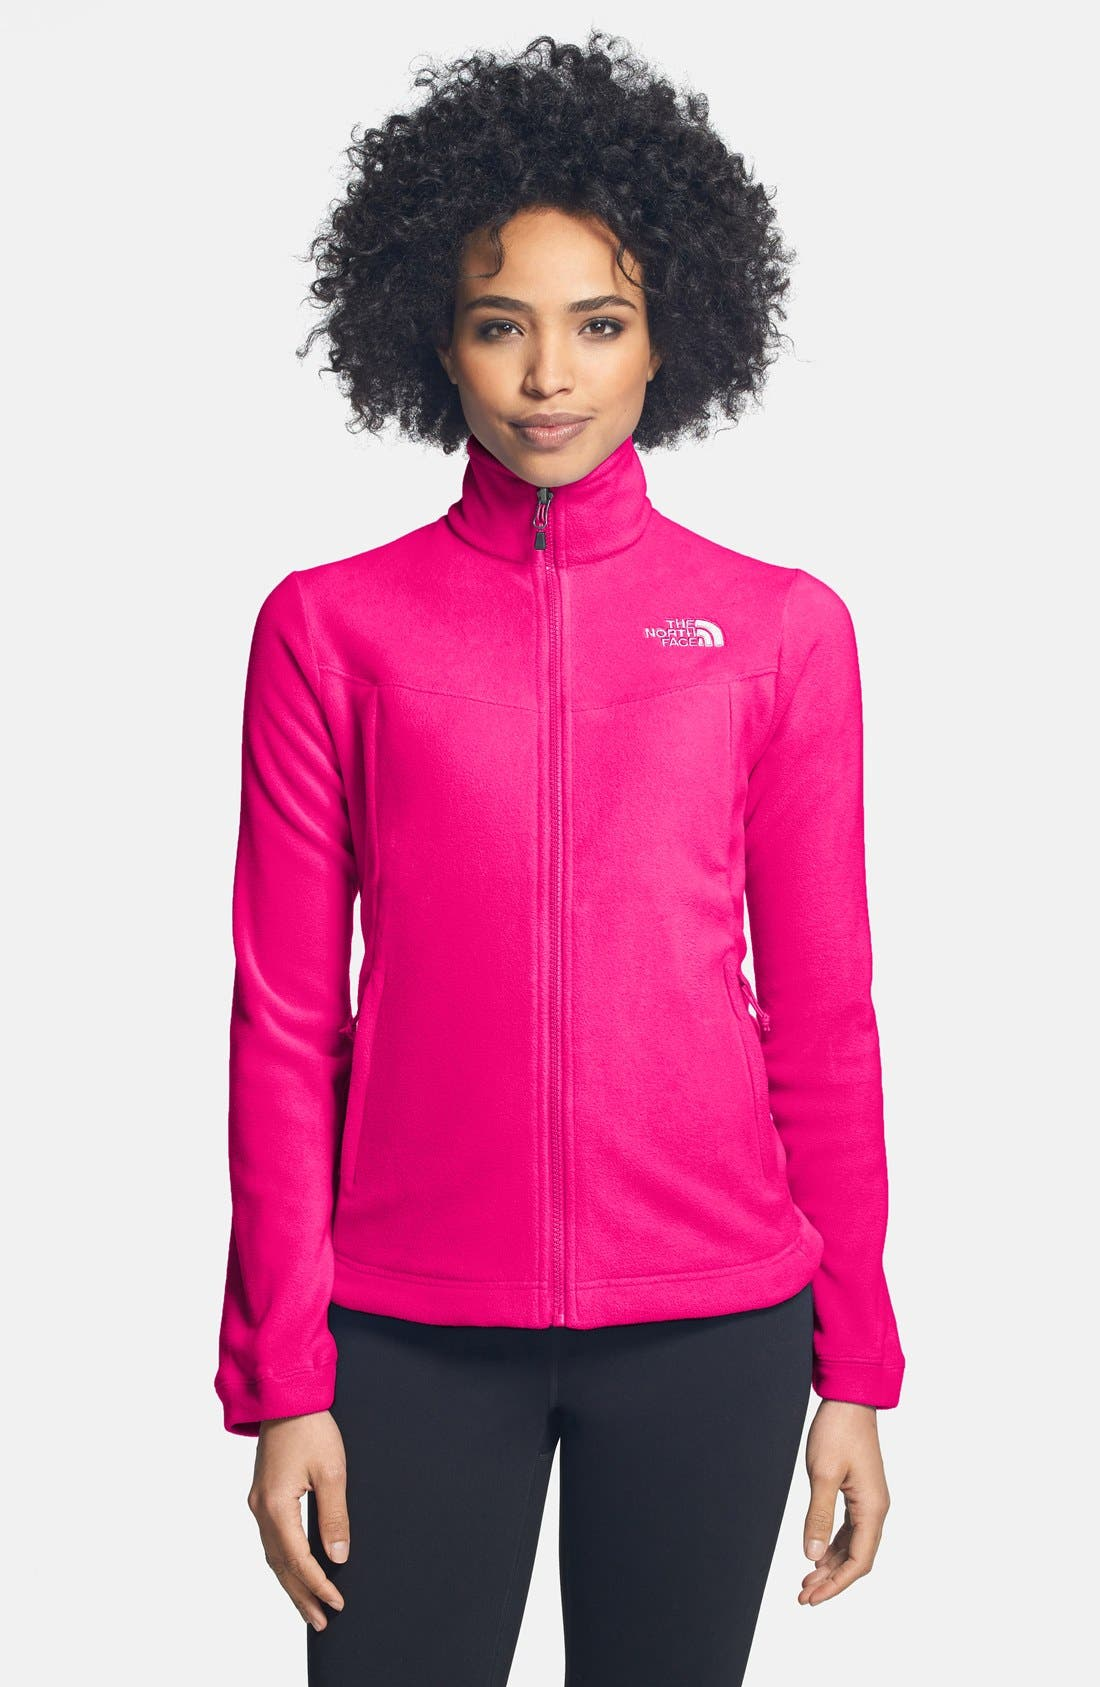 Main Image - The North Face 'Salathe' Fleece Jacket